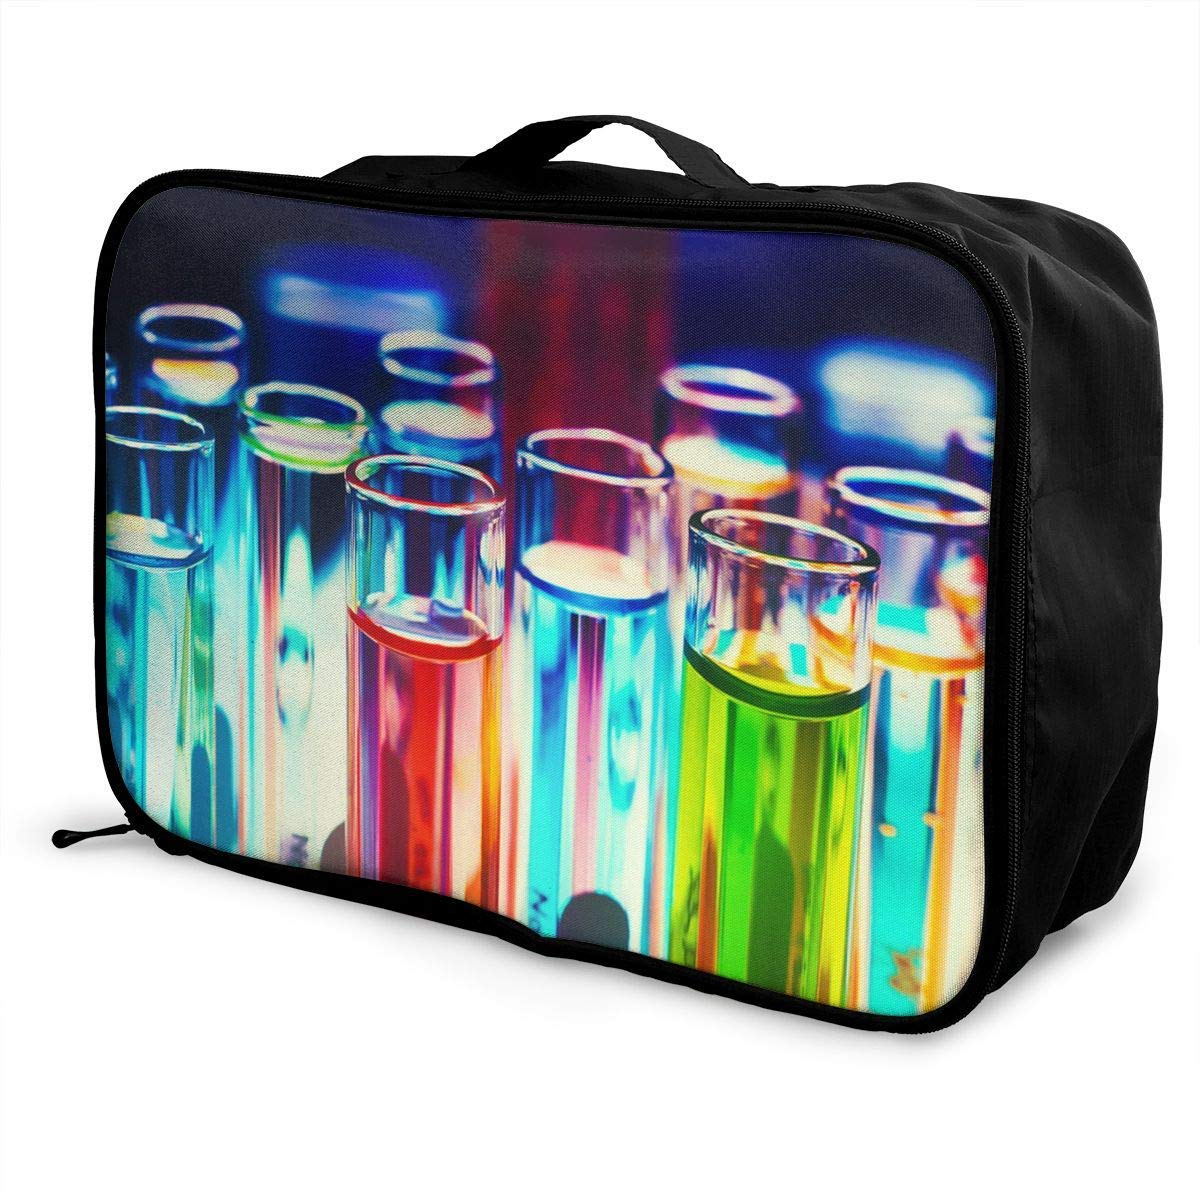 Lightweight Large Capacity Portable Duffel Bag for Men /& Women Chemistry Science Lab Travel Duffel Bag Backpack JTRVW Luggage Bags for Travel